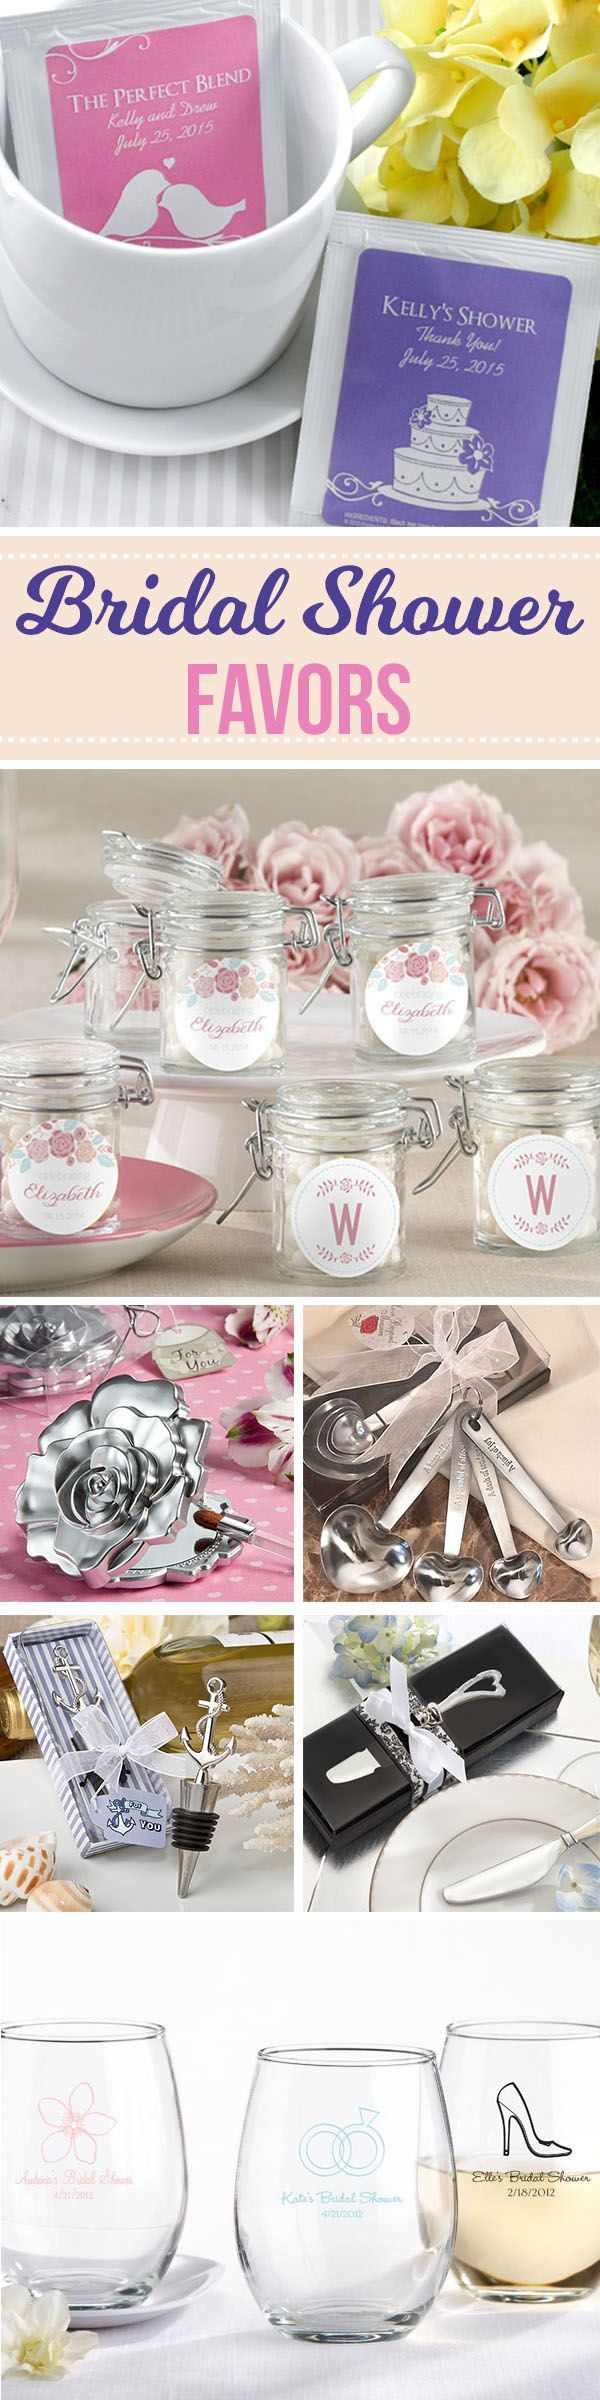 47 Bridal Shower Favors Your Guests Will Actually Want And Use